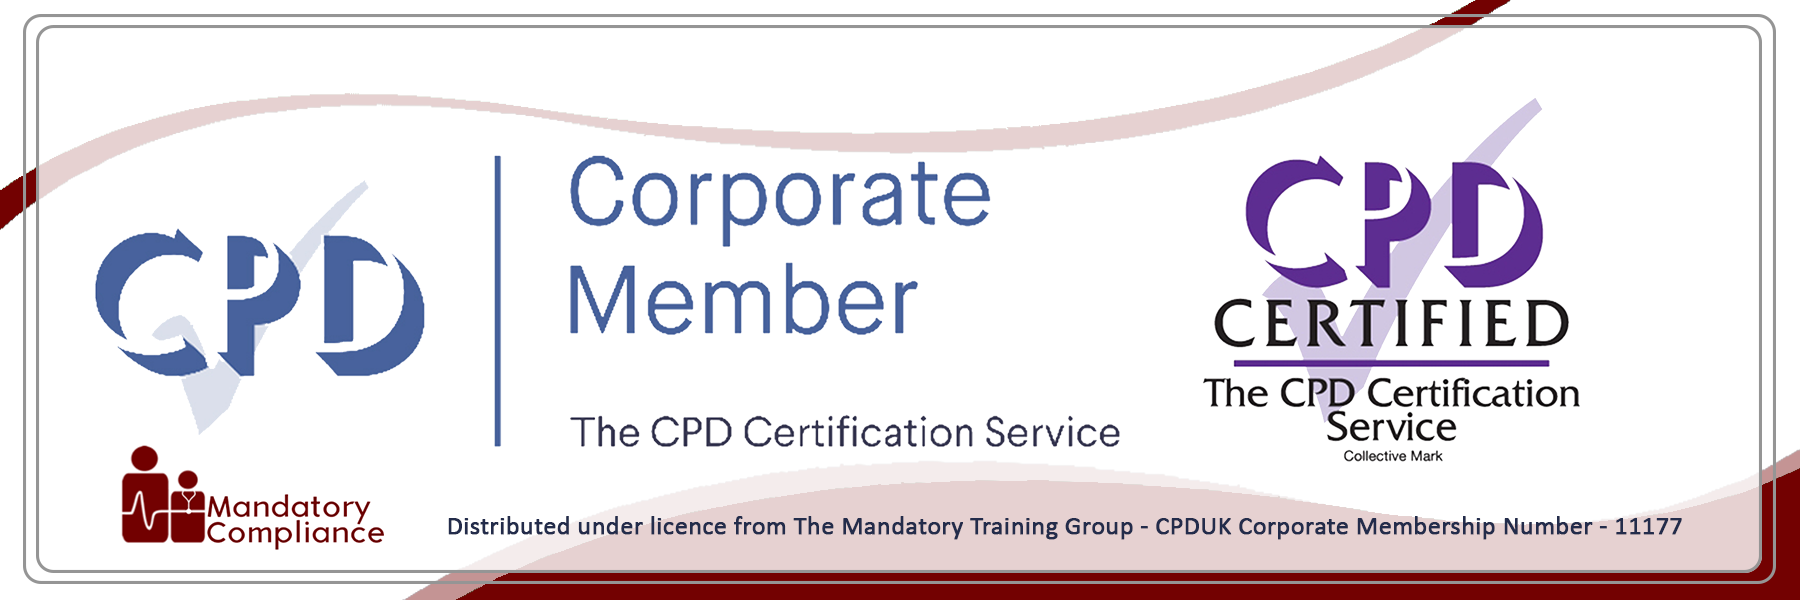 Contact Centre - Online Training Course - CPDUK Accredited - Mandatory Compliance UK -